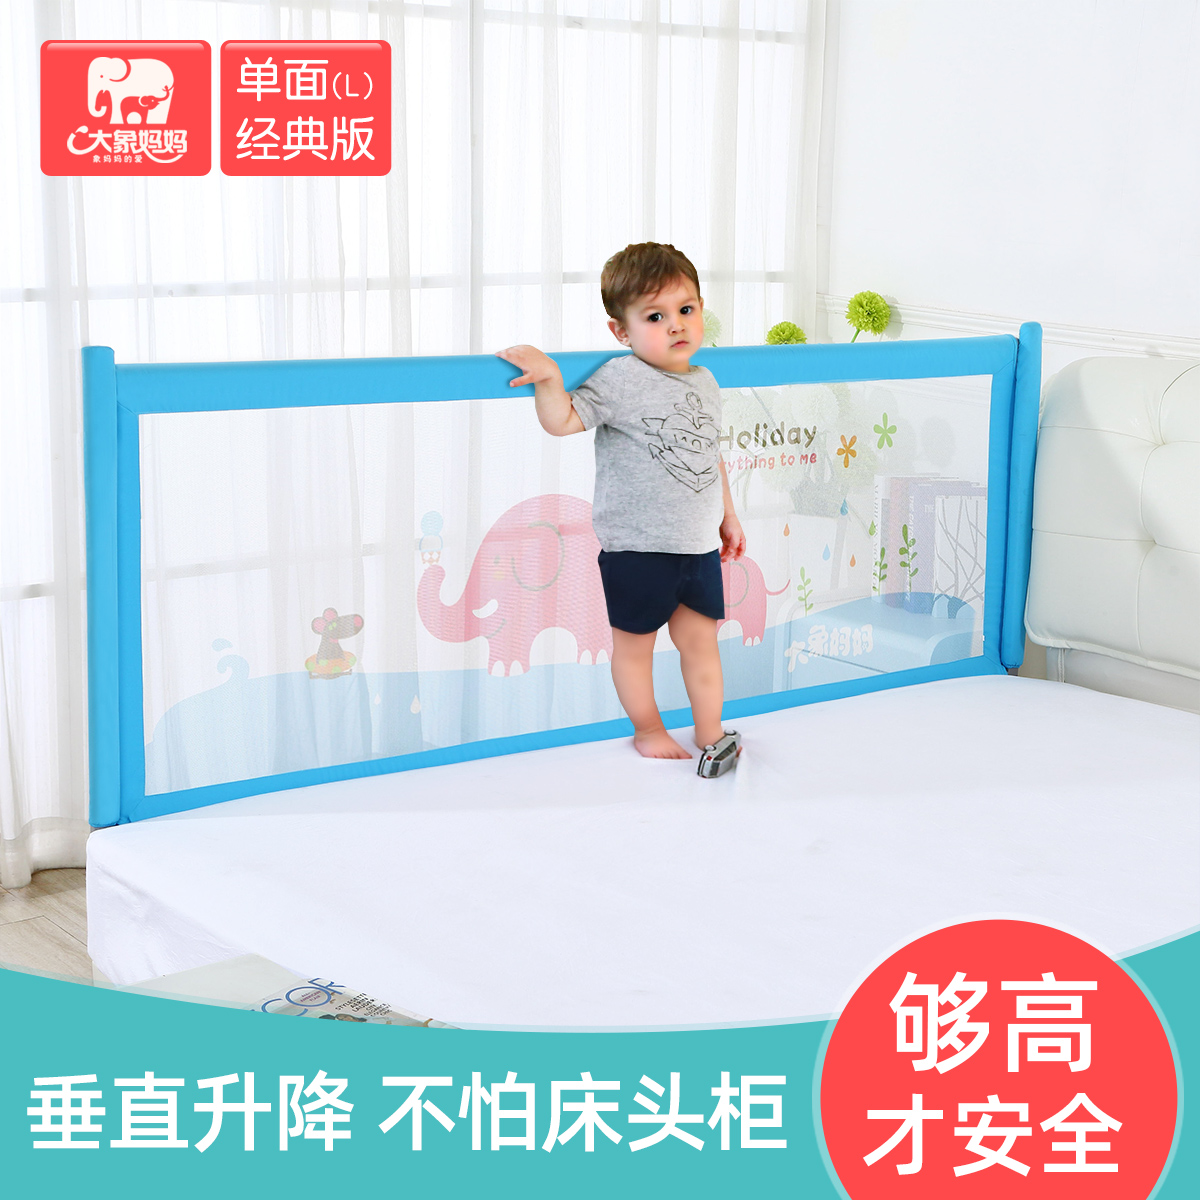 Single-sided Bed Guardrail Babies Fall 1.8m Bedside Guard Babies Fall Off The Bed Fence General Purpose